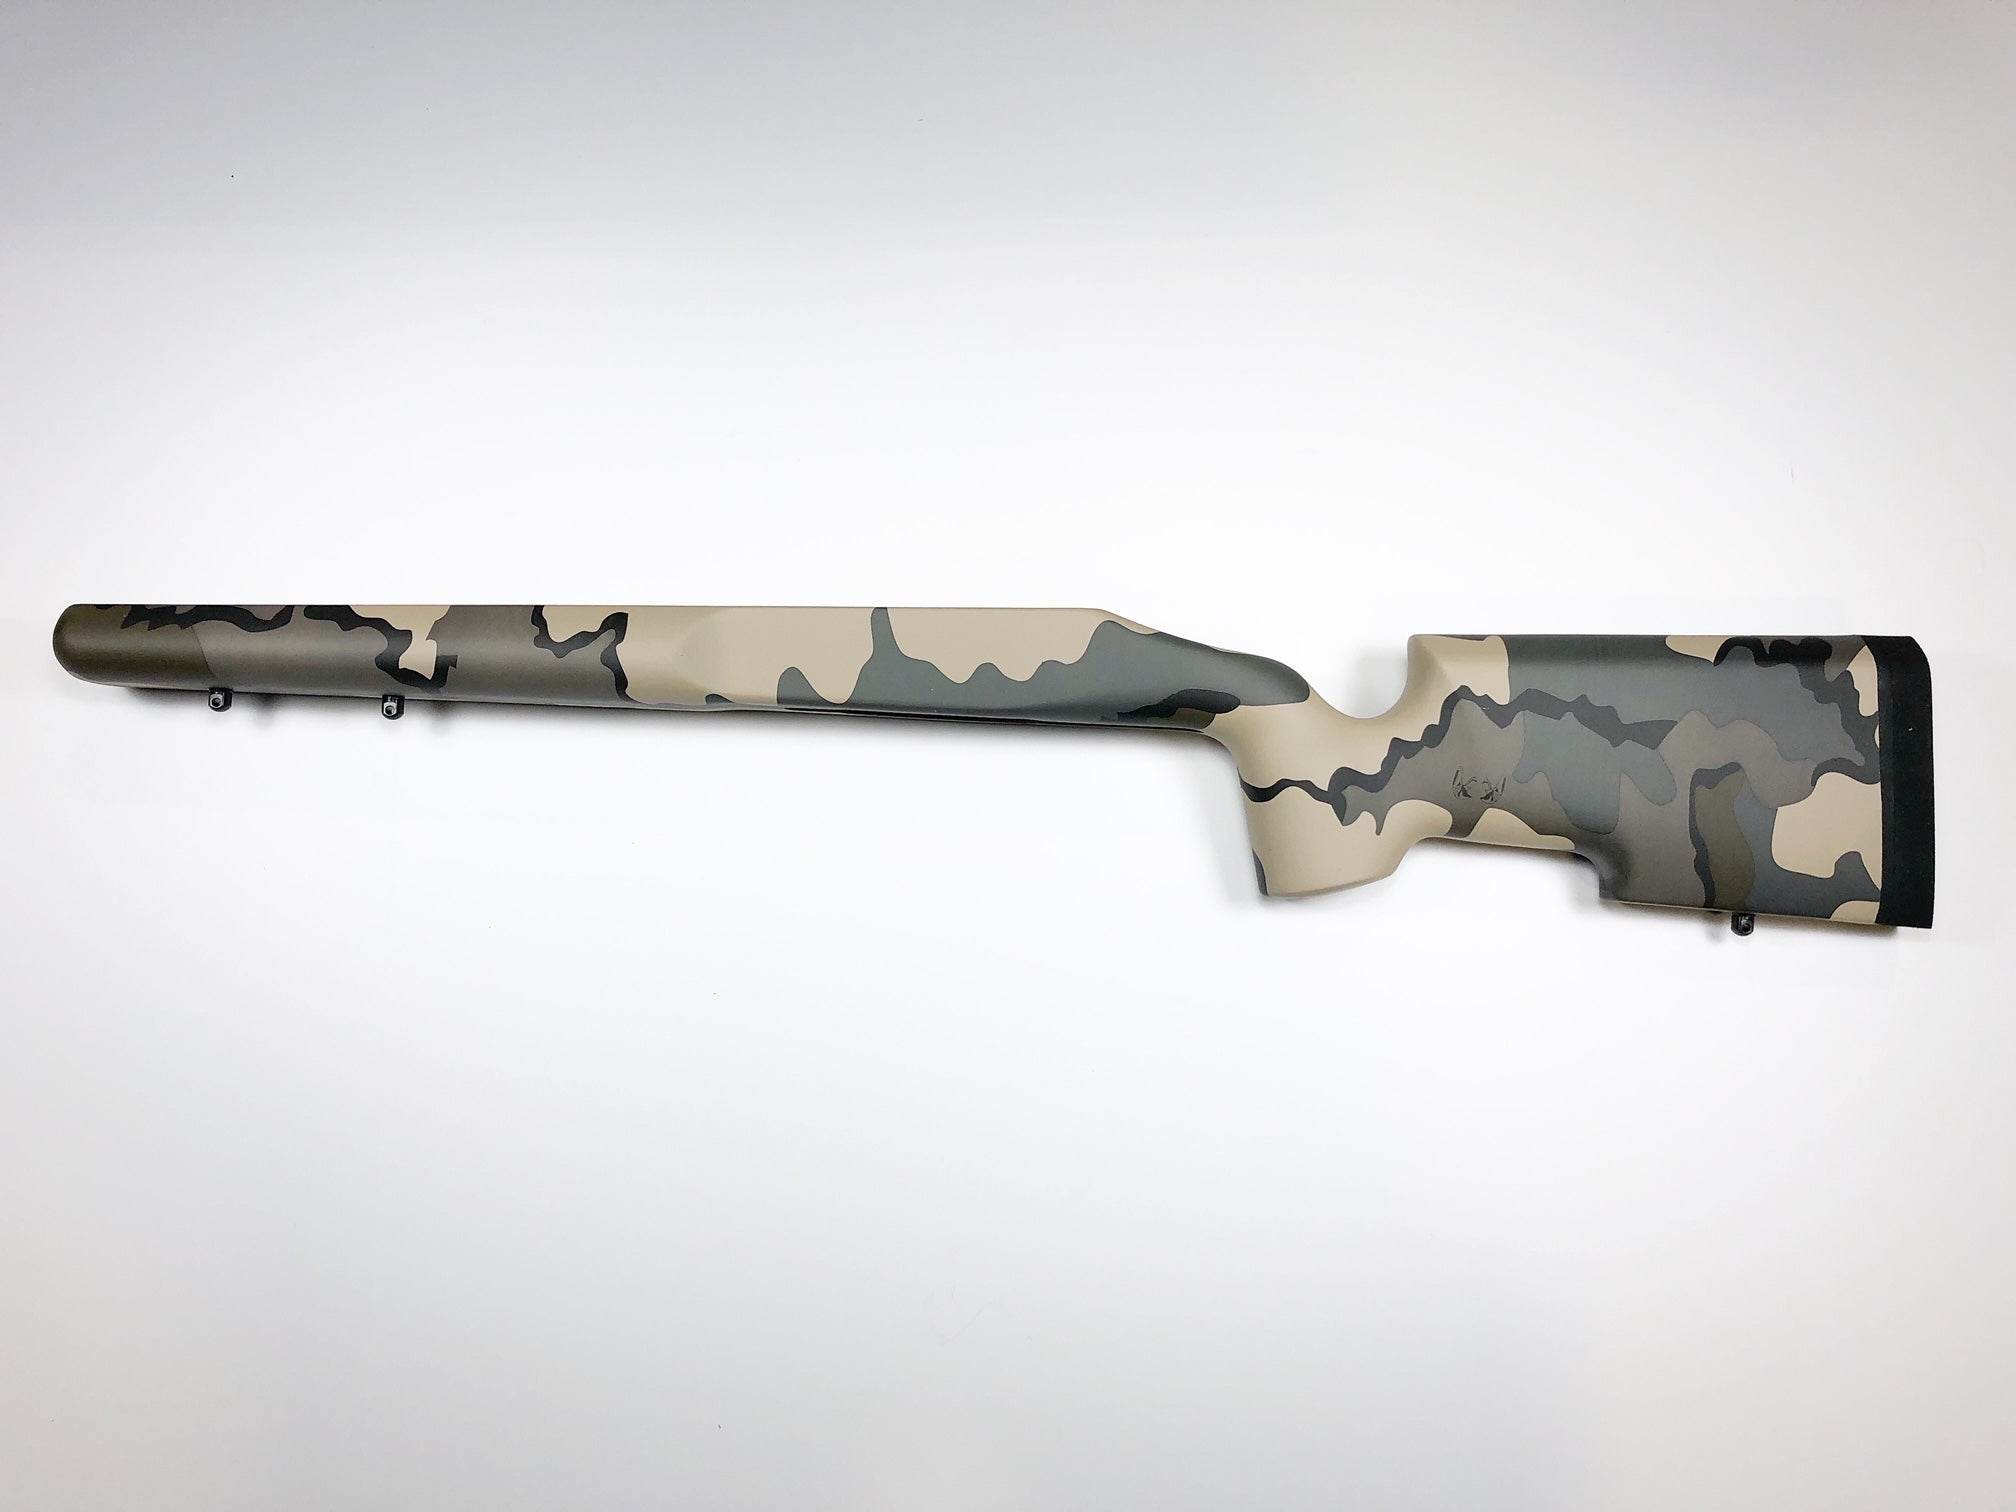 Renegade - Remington 700 short action Kuiu Vias